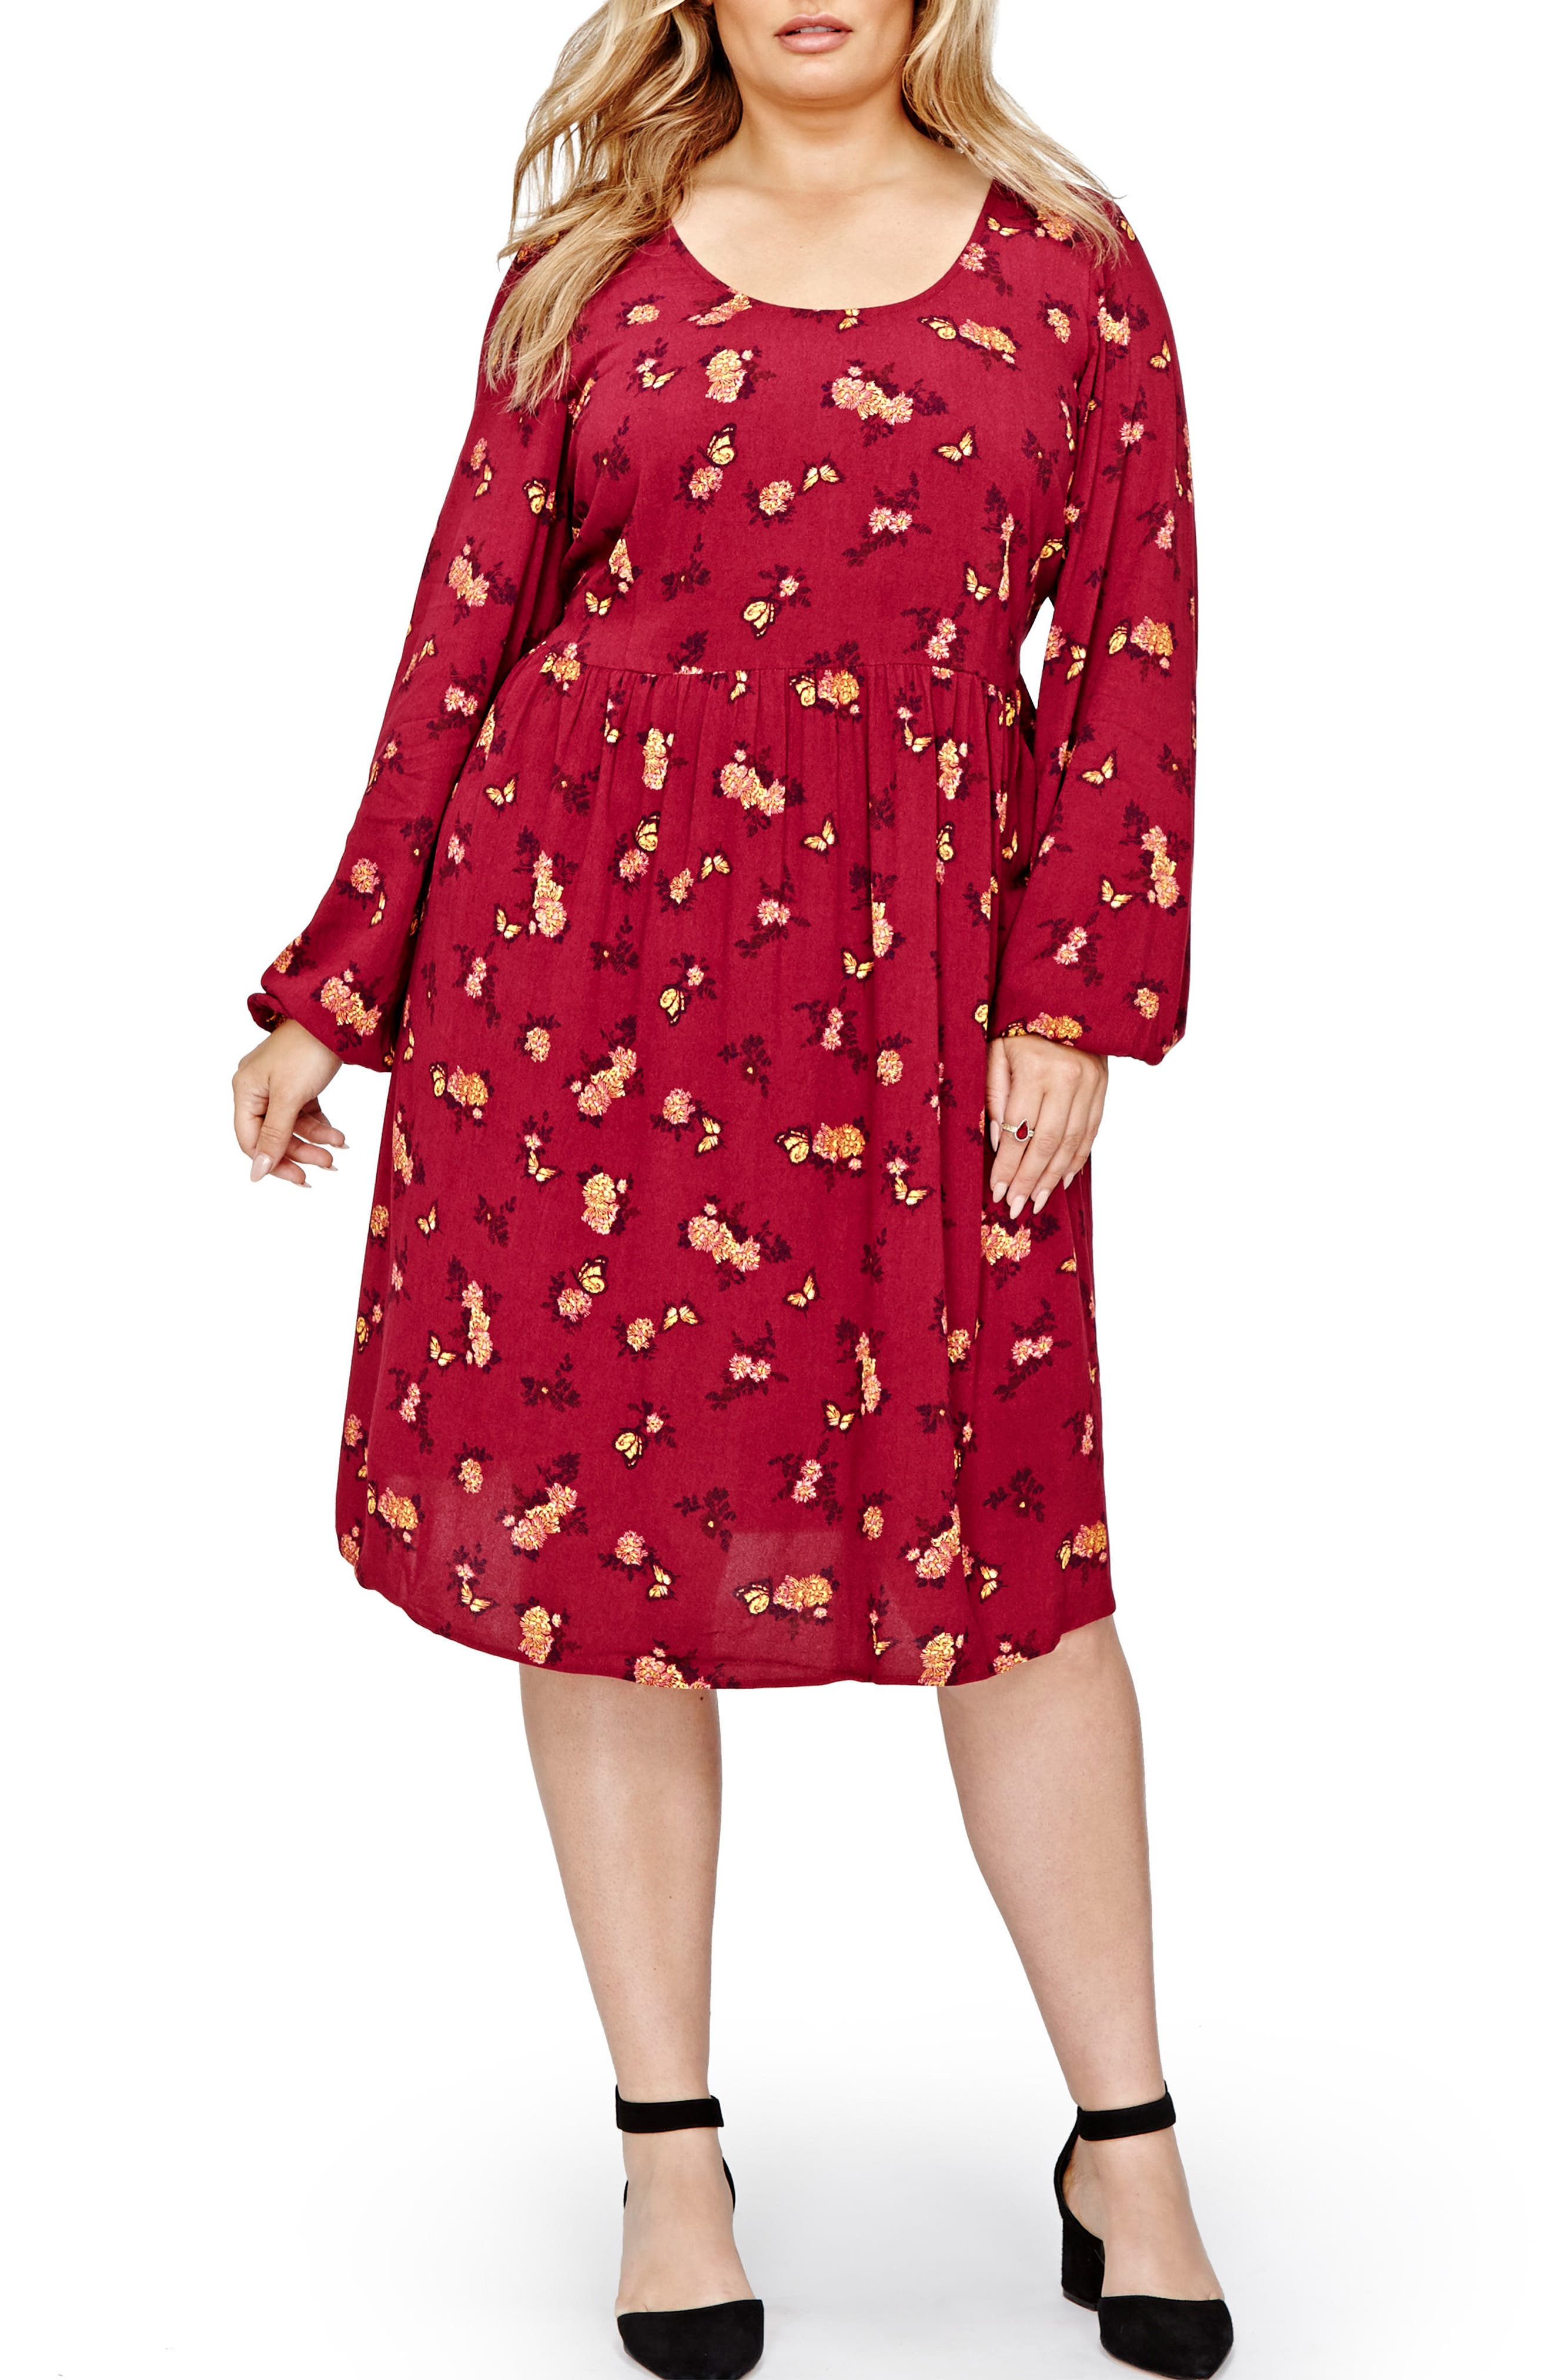 Floral Swing Dress,                             Main thumbnail 1, color,                             Rhododendron Floral